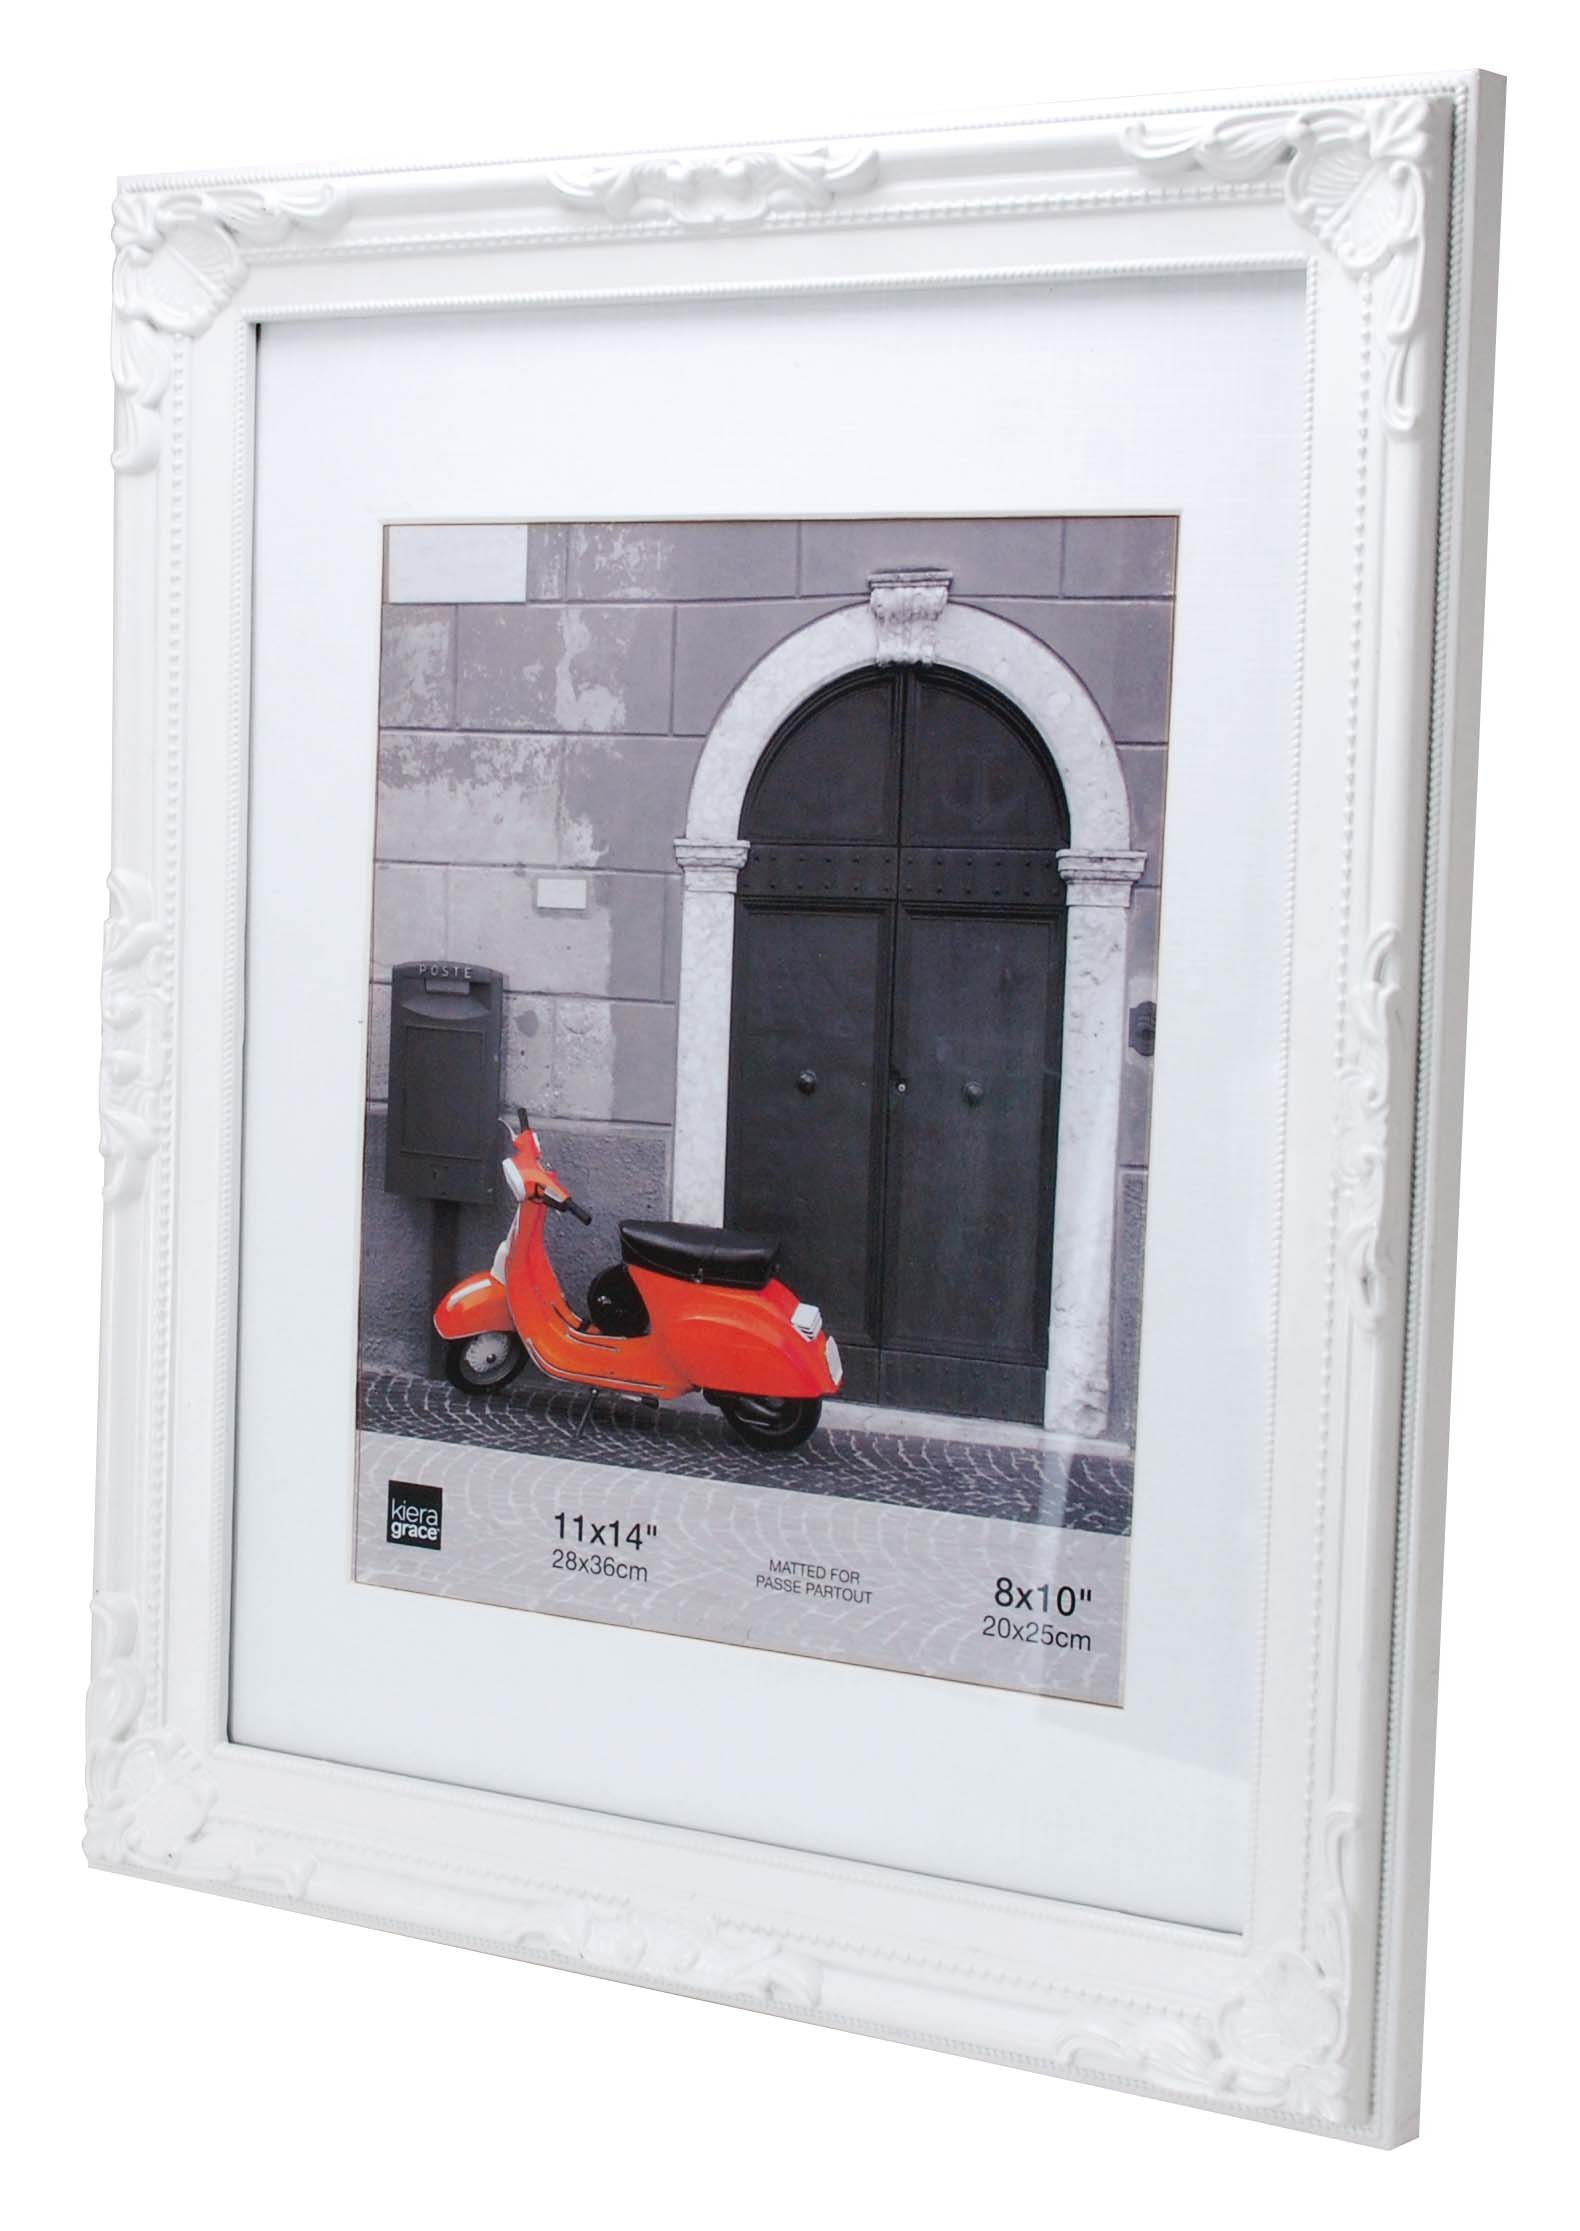 "kieragrace Traditional luxury-frames, 11 by 14-Inch, White - 11"" x 14"" for 8"" x 10"" image (mat opening 7. 5"" x 9. 5"") Overall size: 12. 75"" x 15. 75"" x 1"" Made of high quality resin (plastic) - picture-frames, bedroom-decor, bedroom - 71y2D225LOL -"